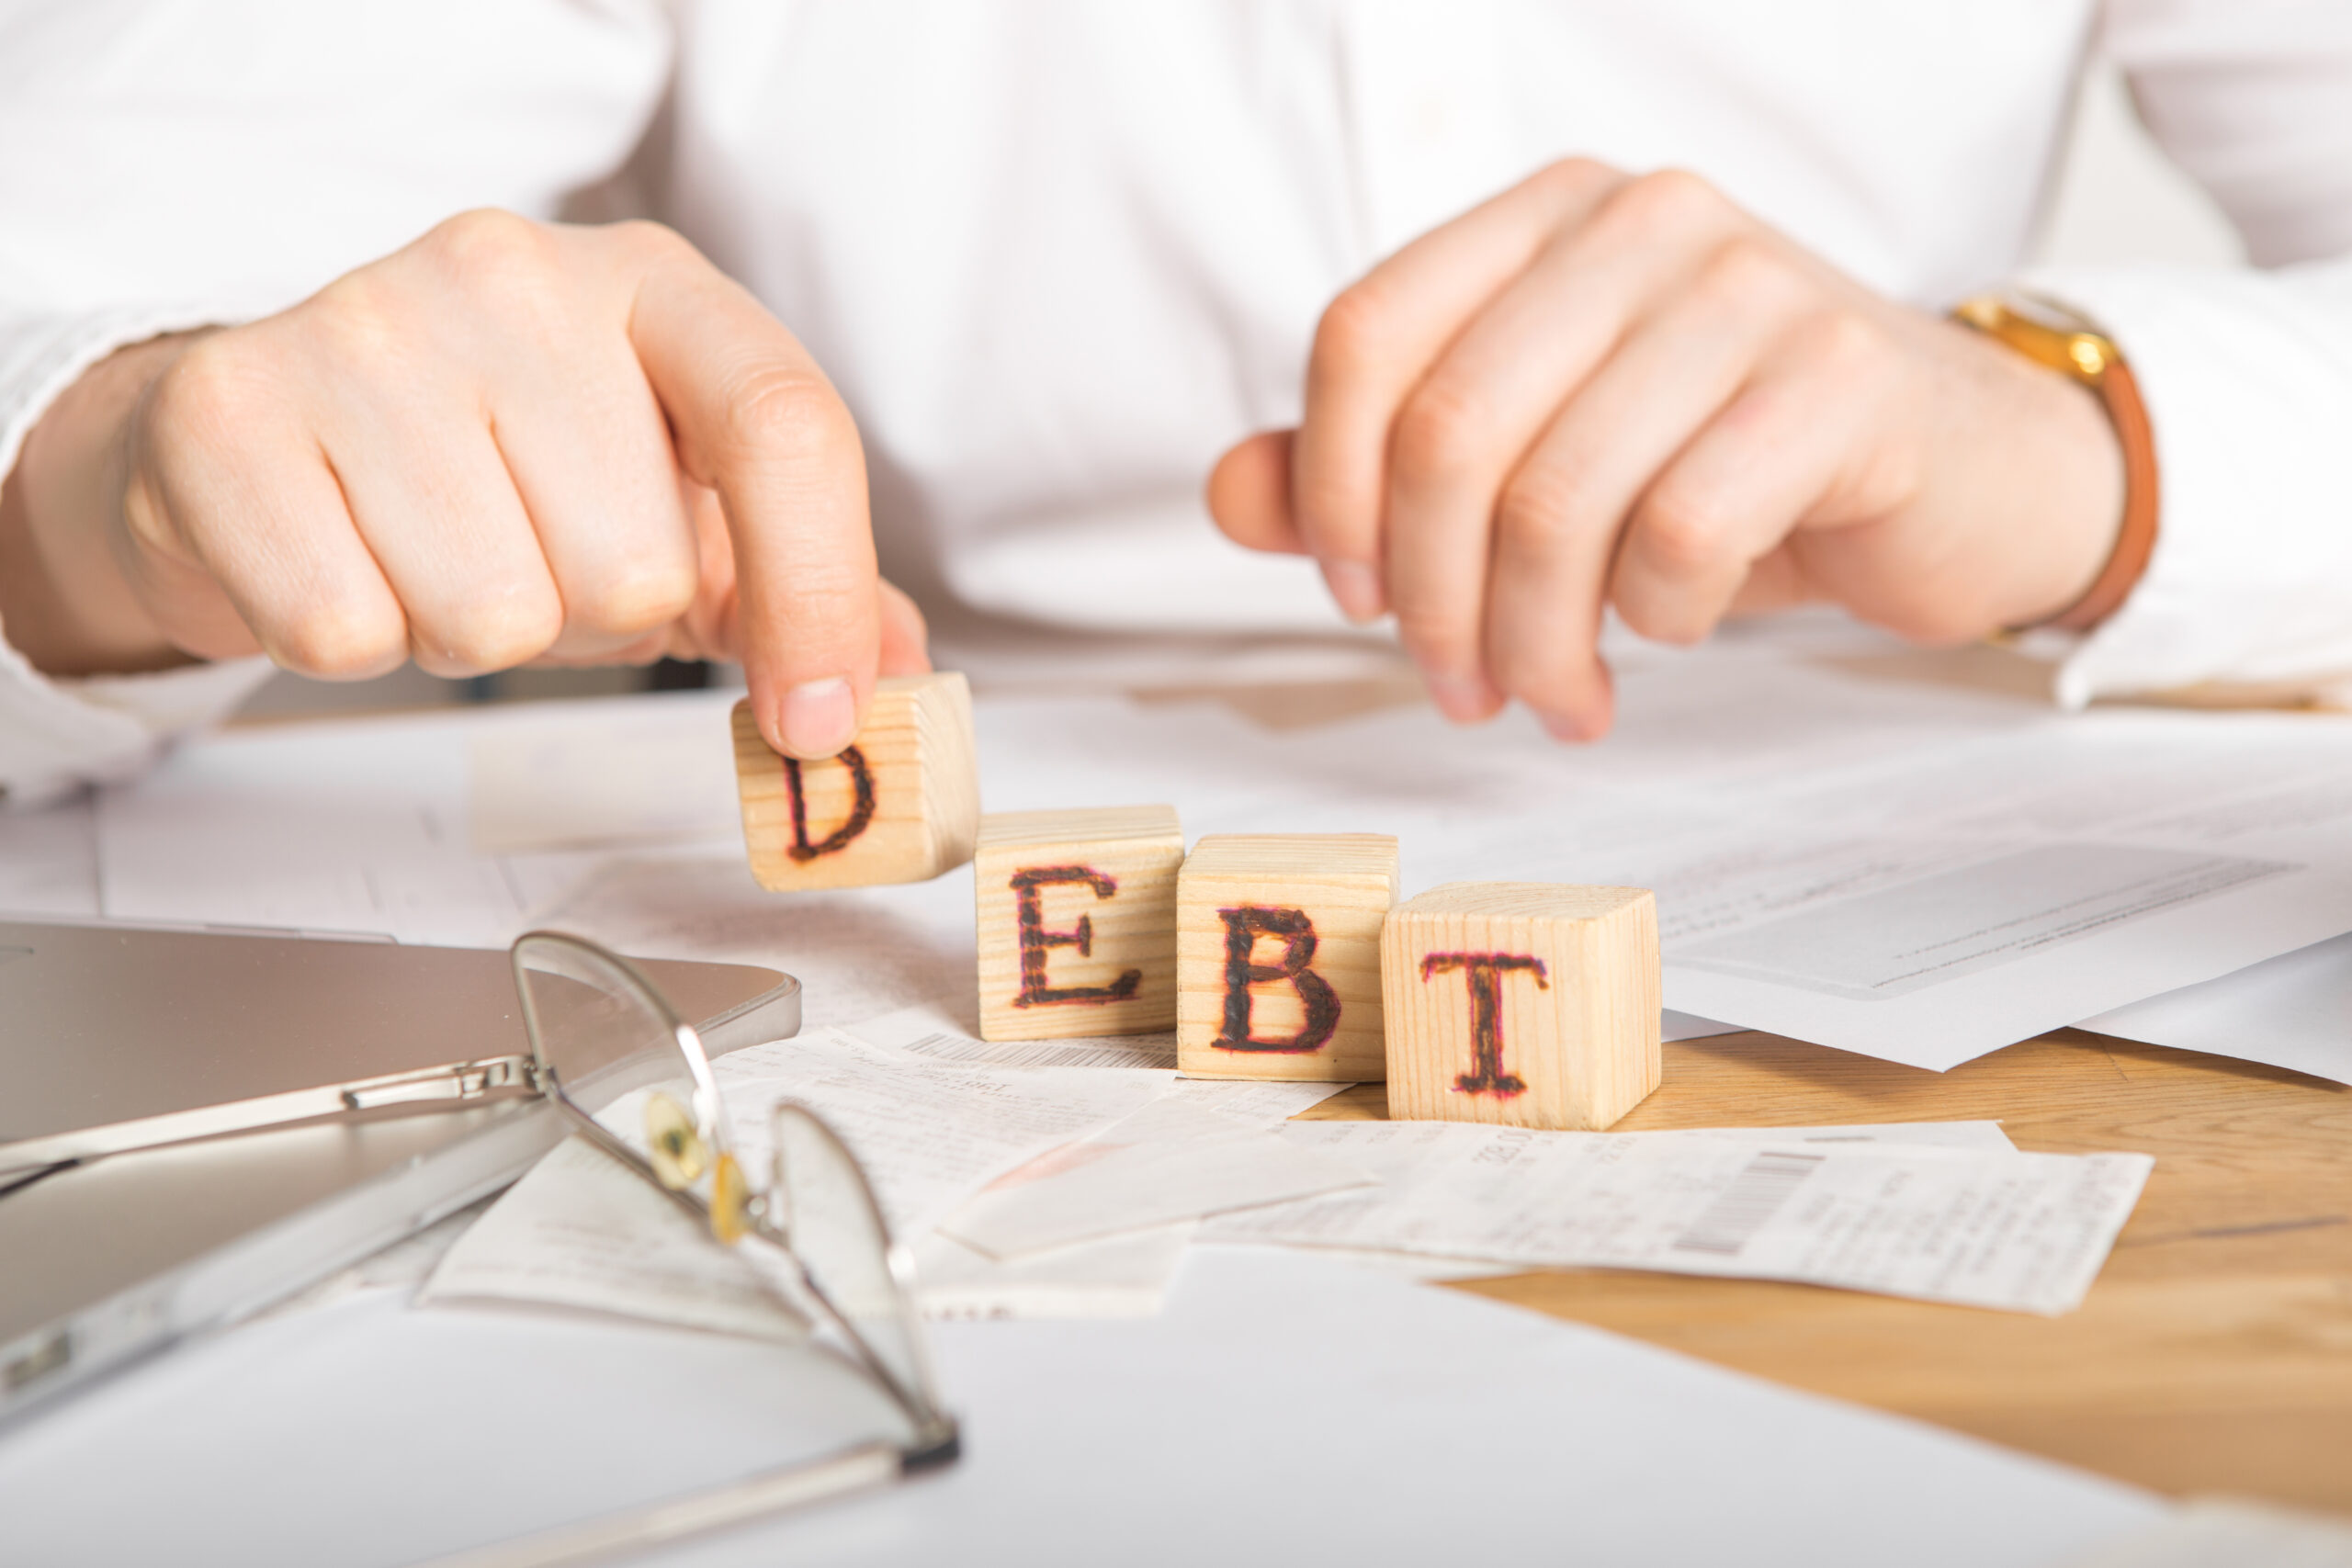 businessman arranging wooden blocks with letters to spell the word debt